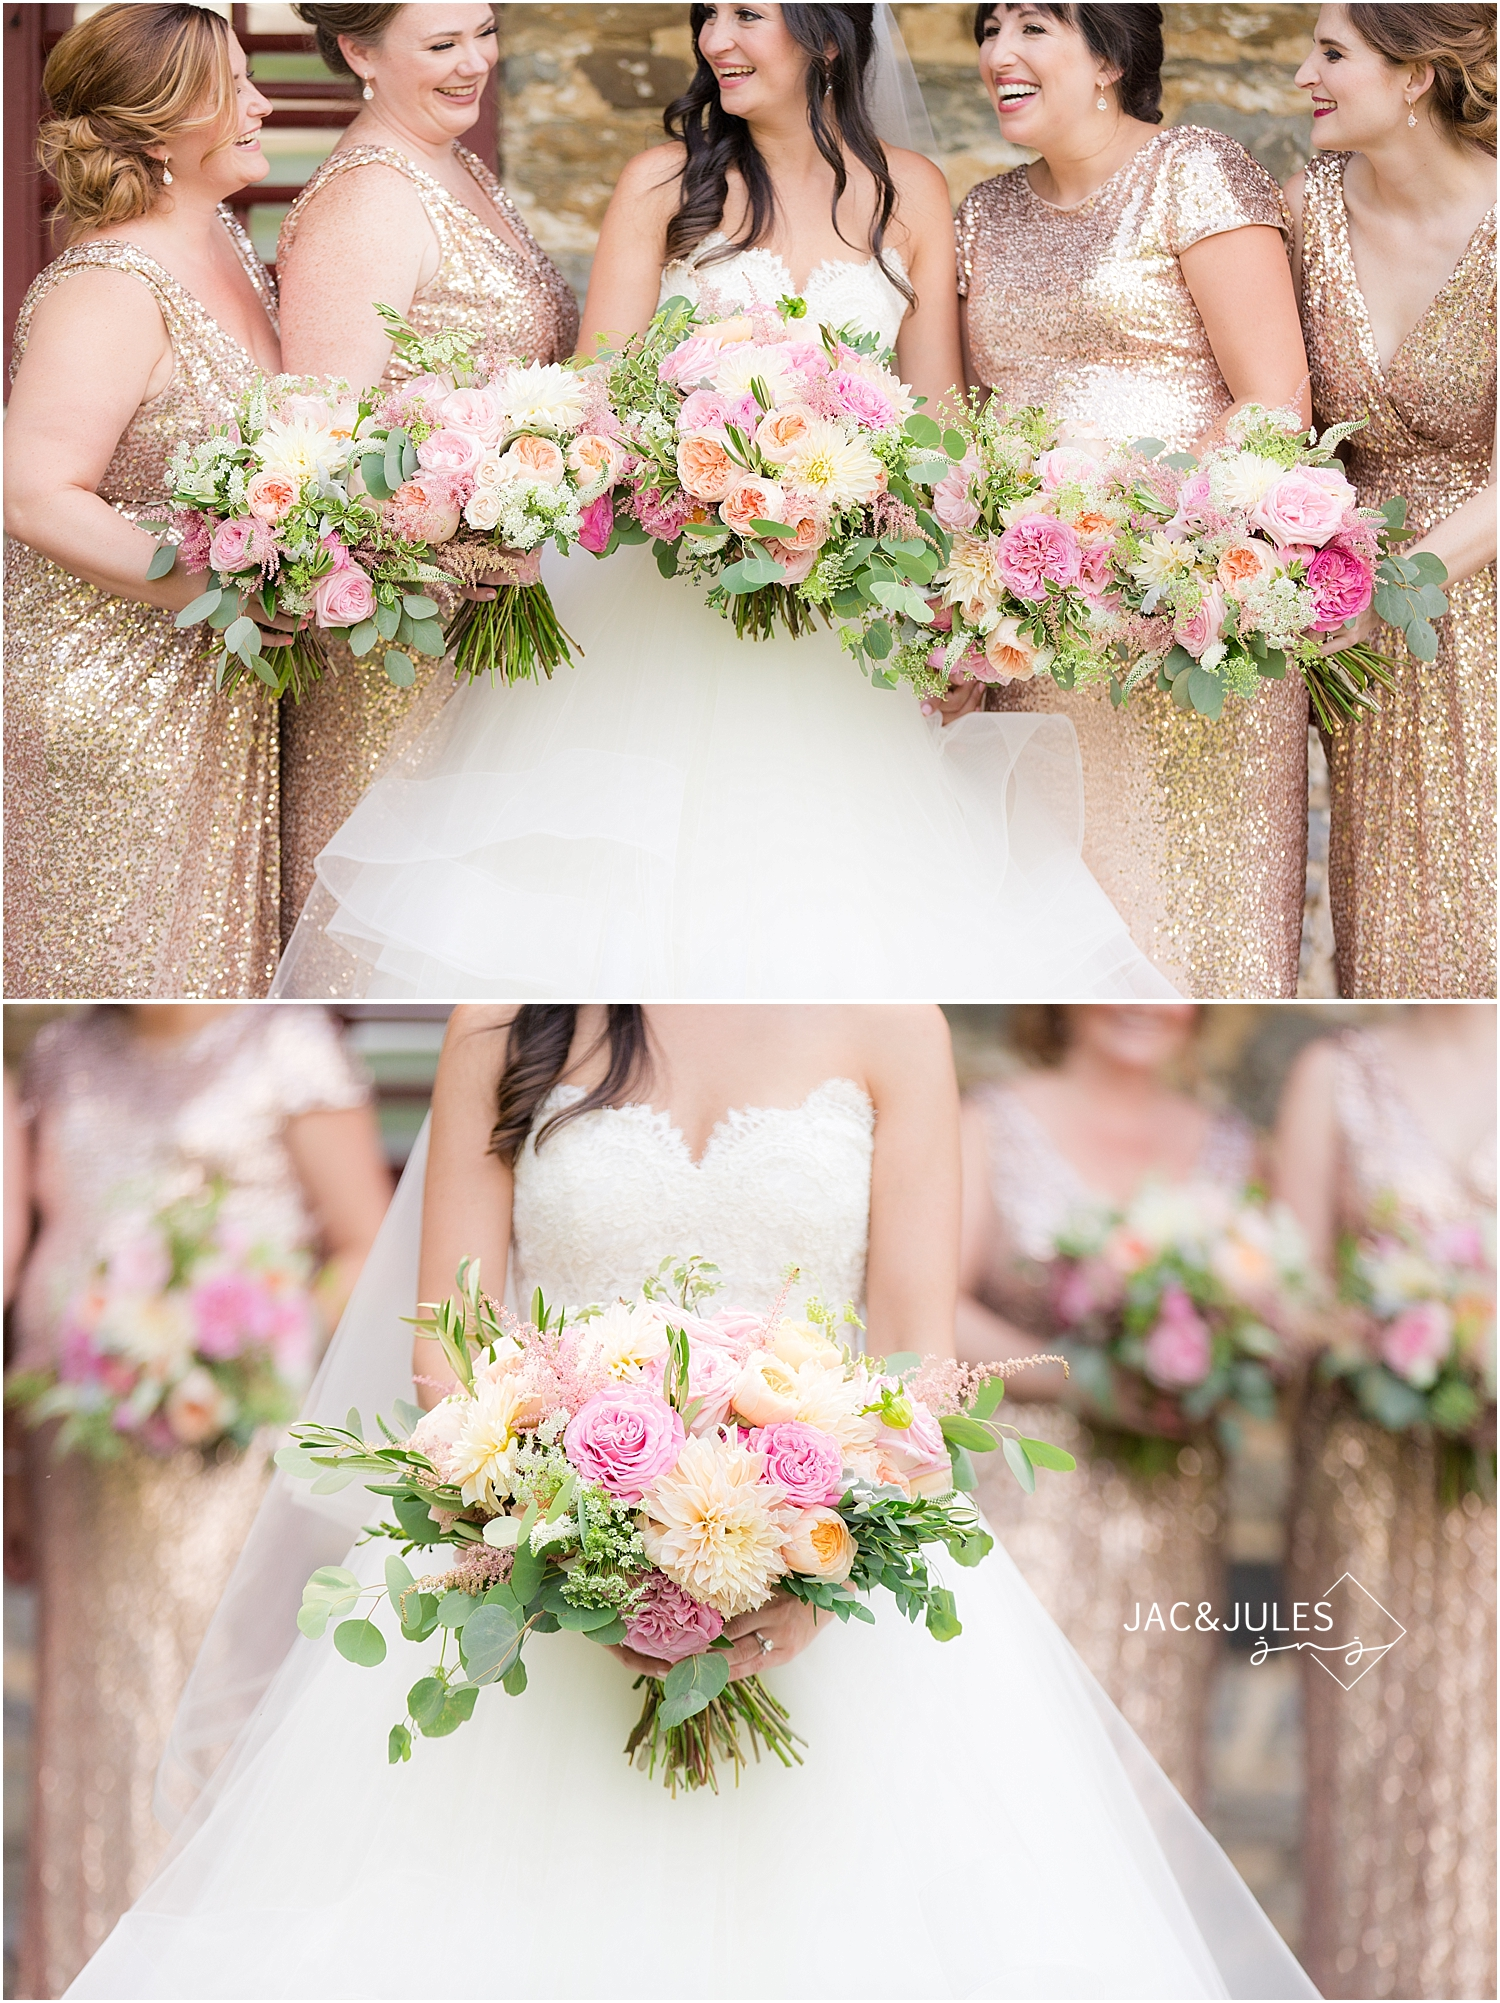 jacnjules photographs wedding bouquets from petals with style in Lancaster, PA